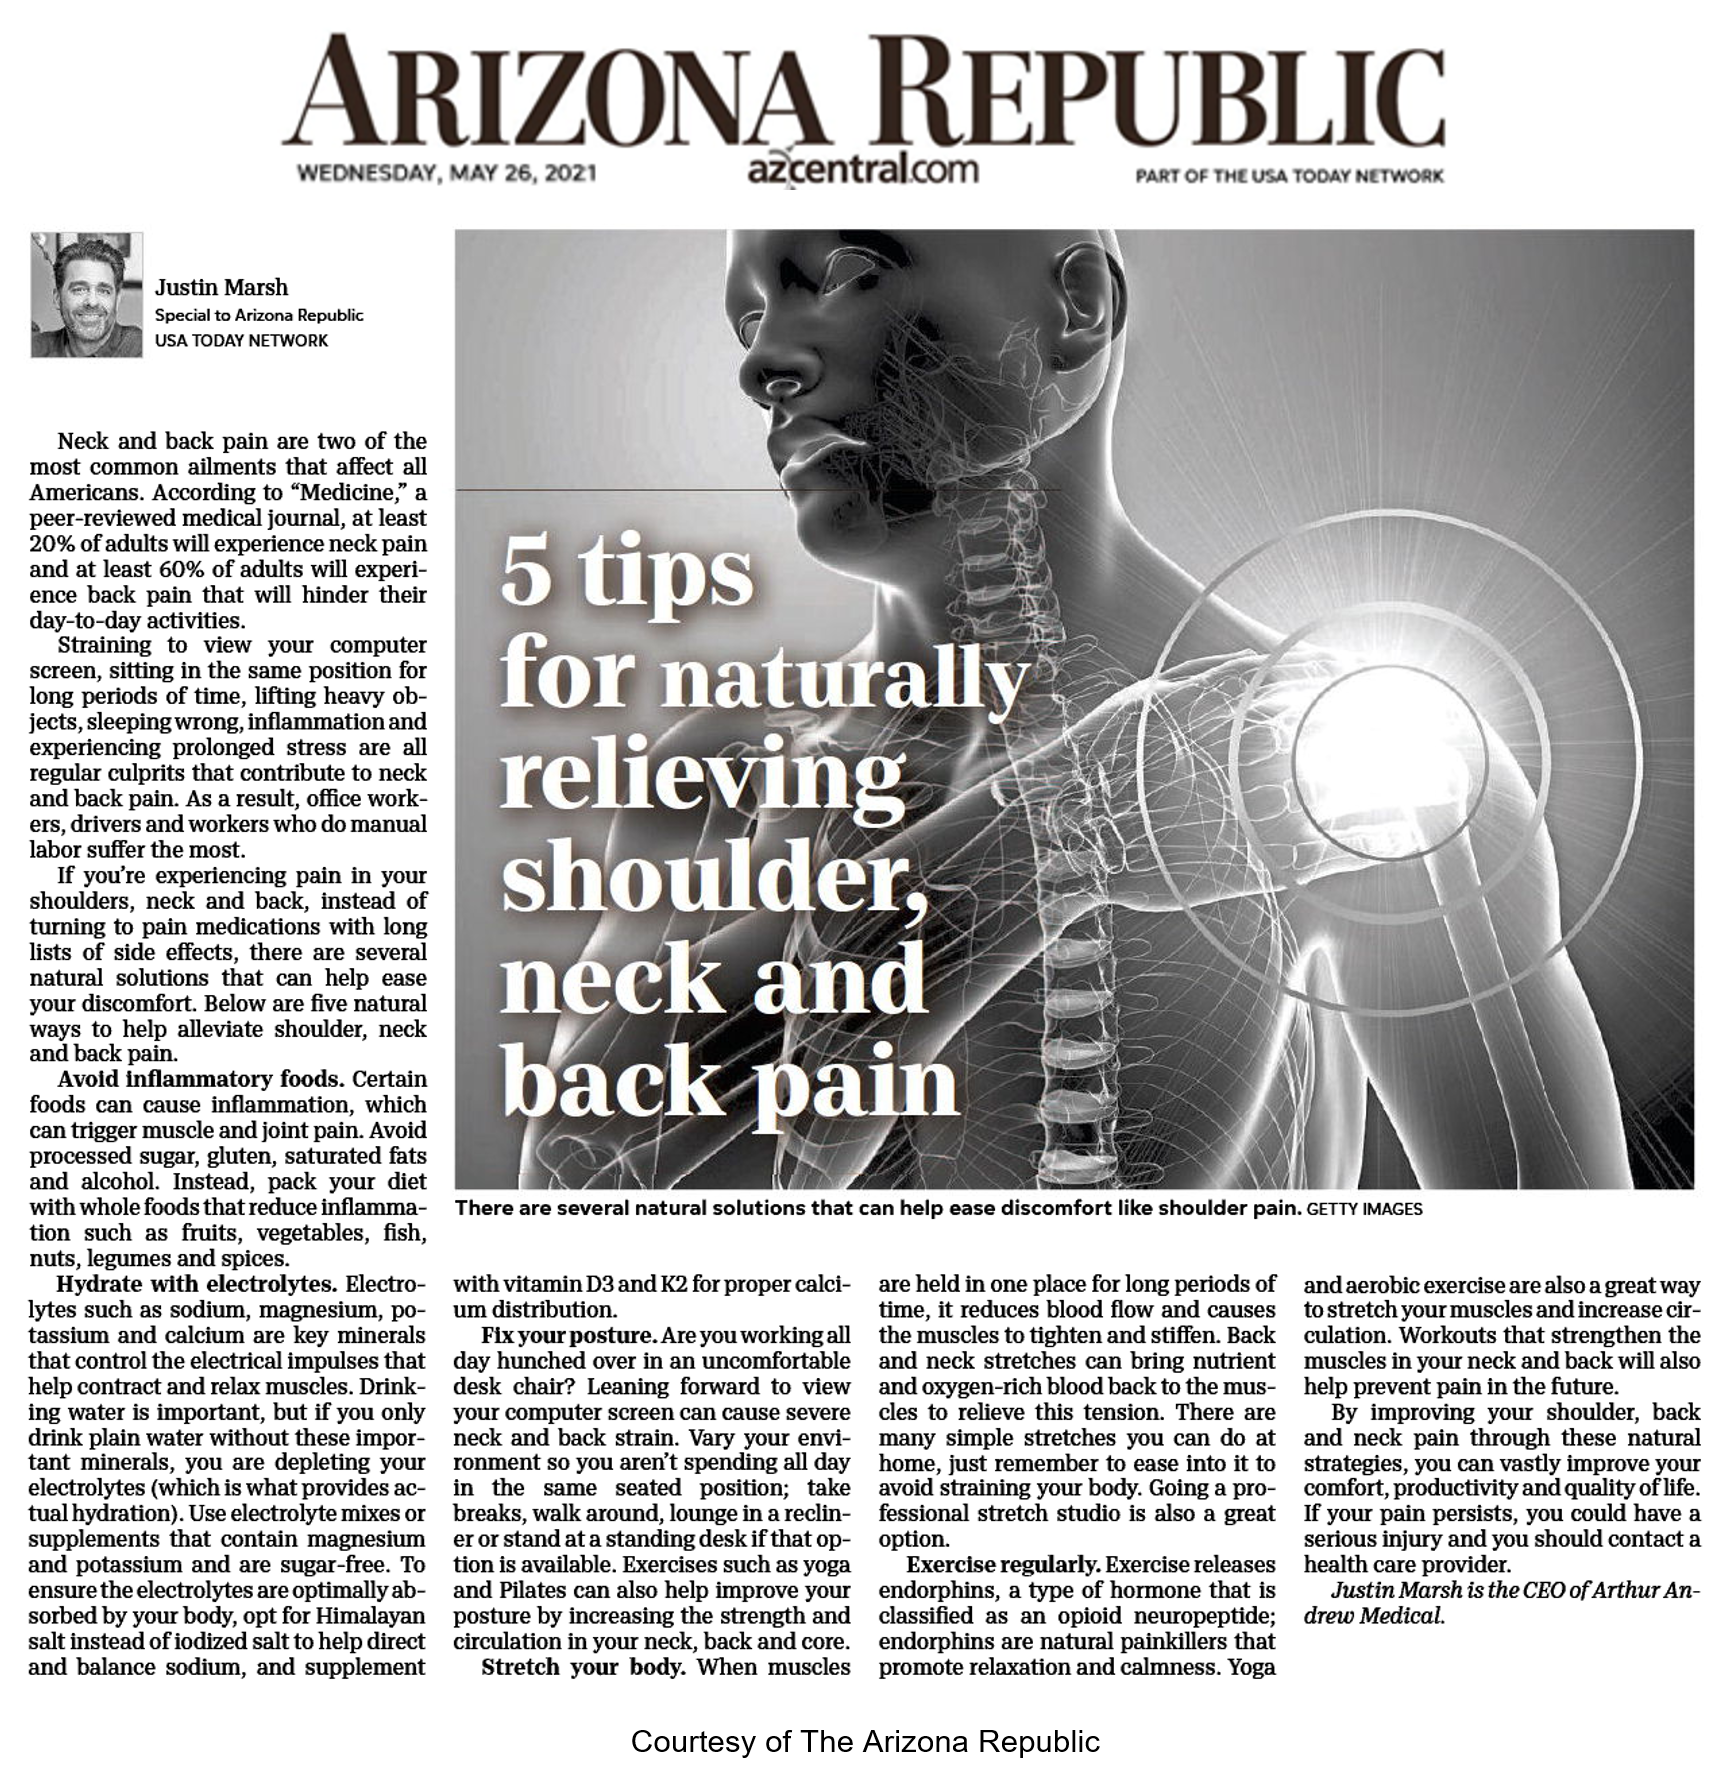 5 Tips for Naturally Relieving Shoulder Neck and Back Pain